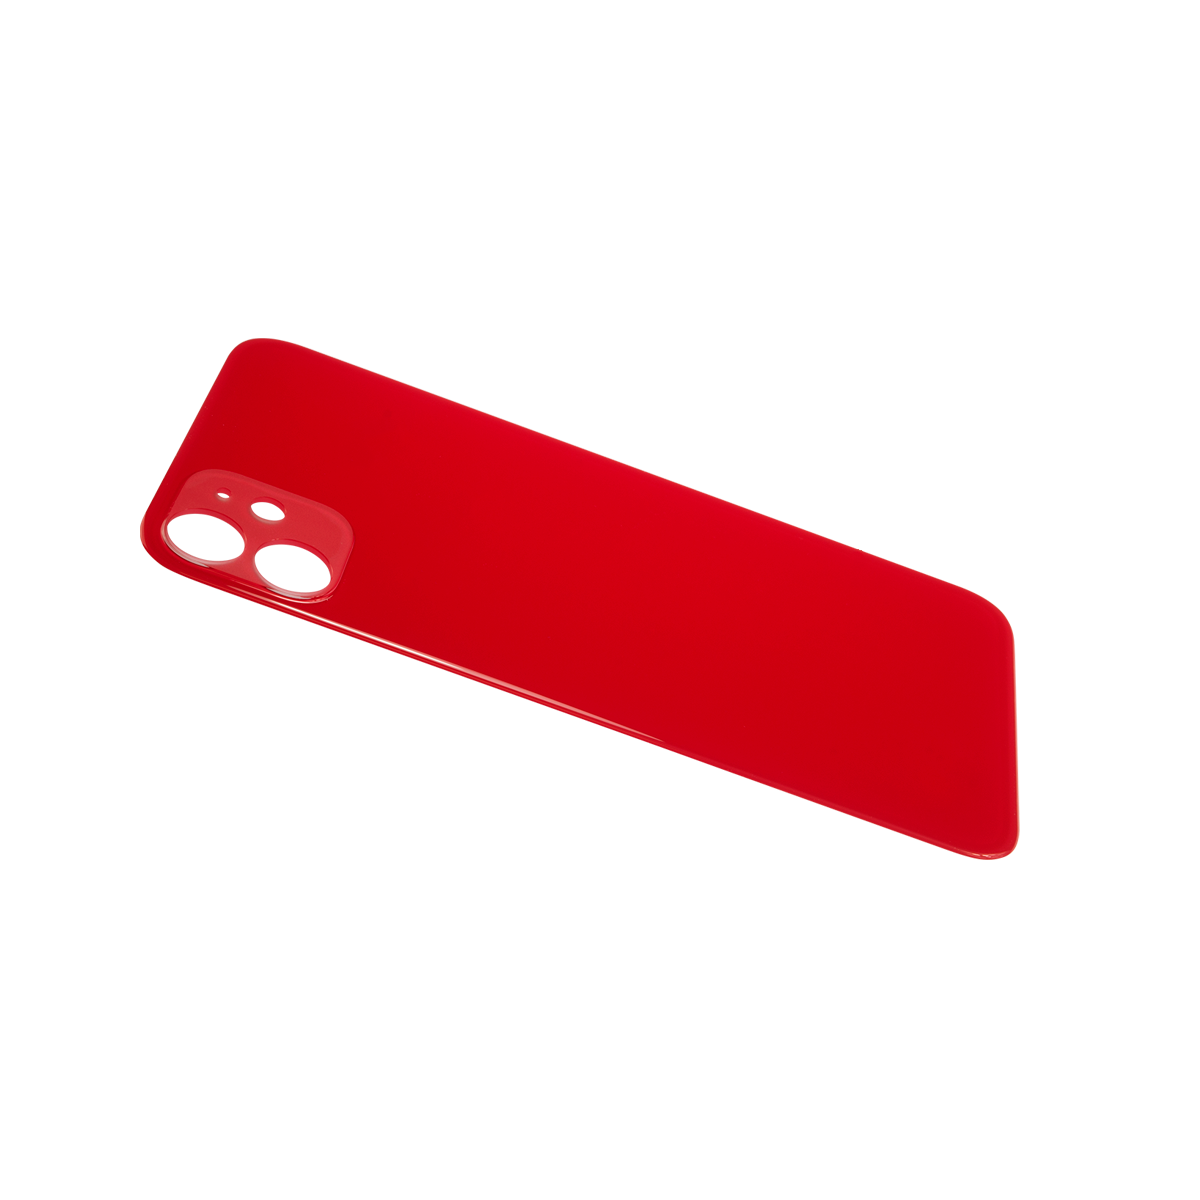 iPhone_11_Rear_Glass_Replacement_red_side_view_SBQOBD5EVRPQ.png